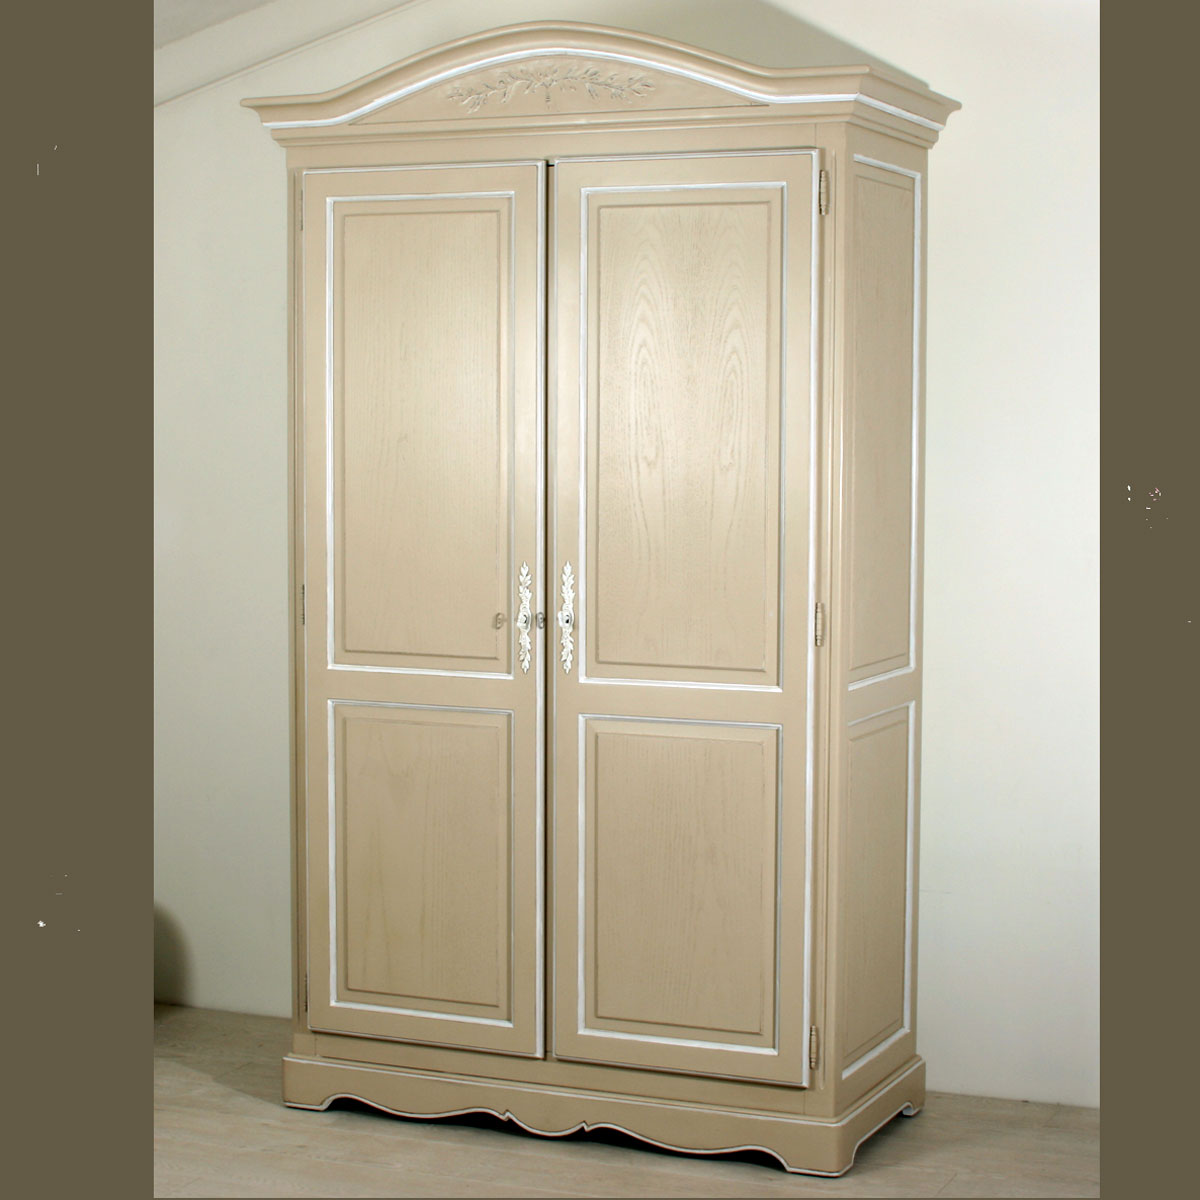 What is a armoire 28 images art furniture bedroom for Armoire une porte